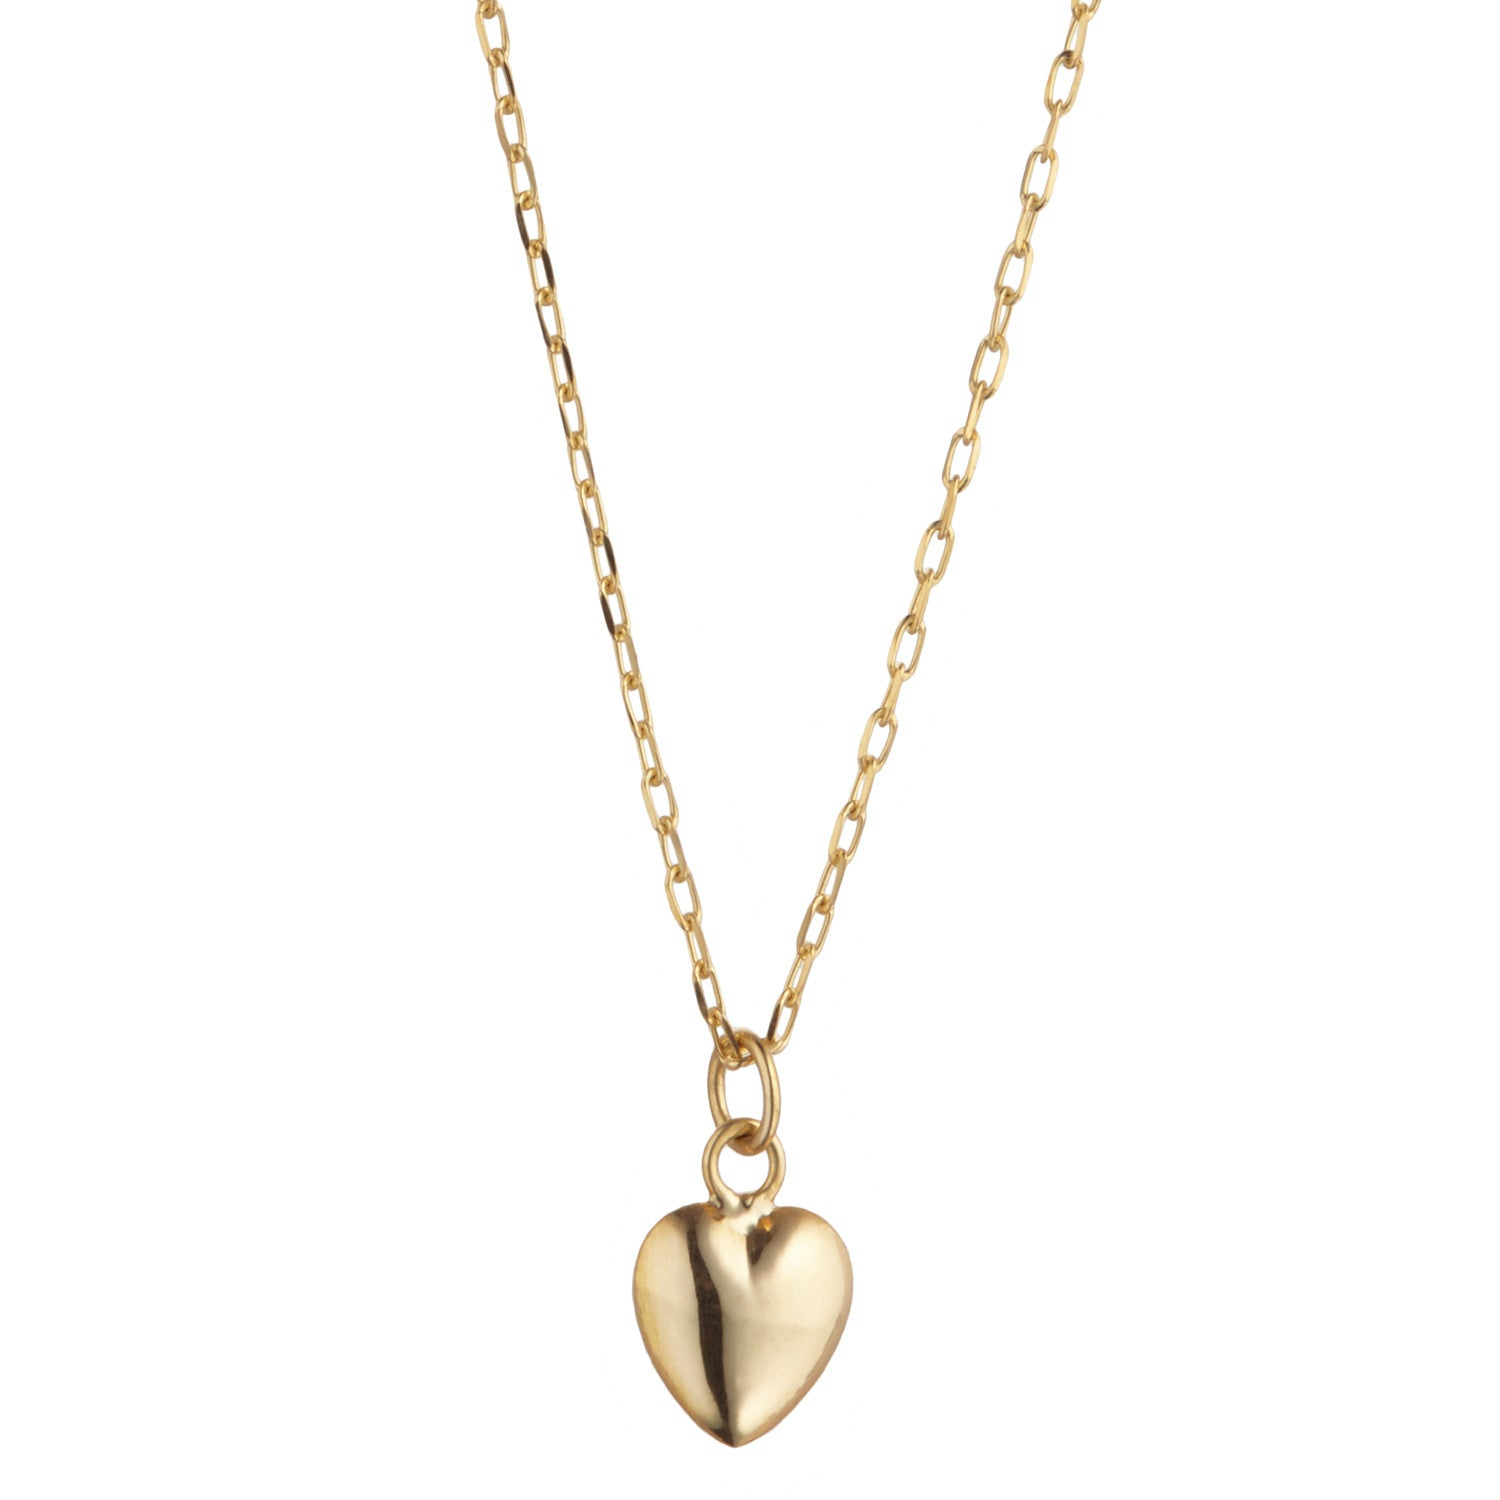 9kt Gold 3D Heart Necklace - MoMuse Jewellery